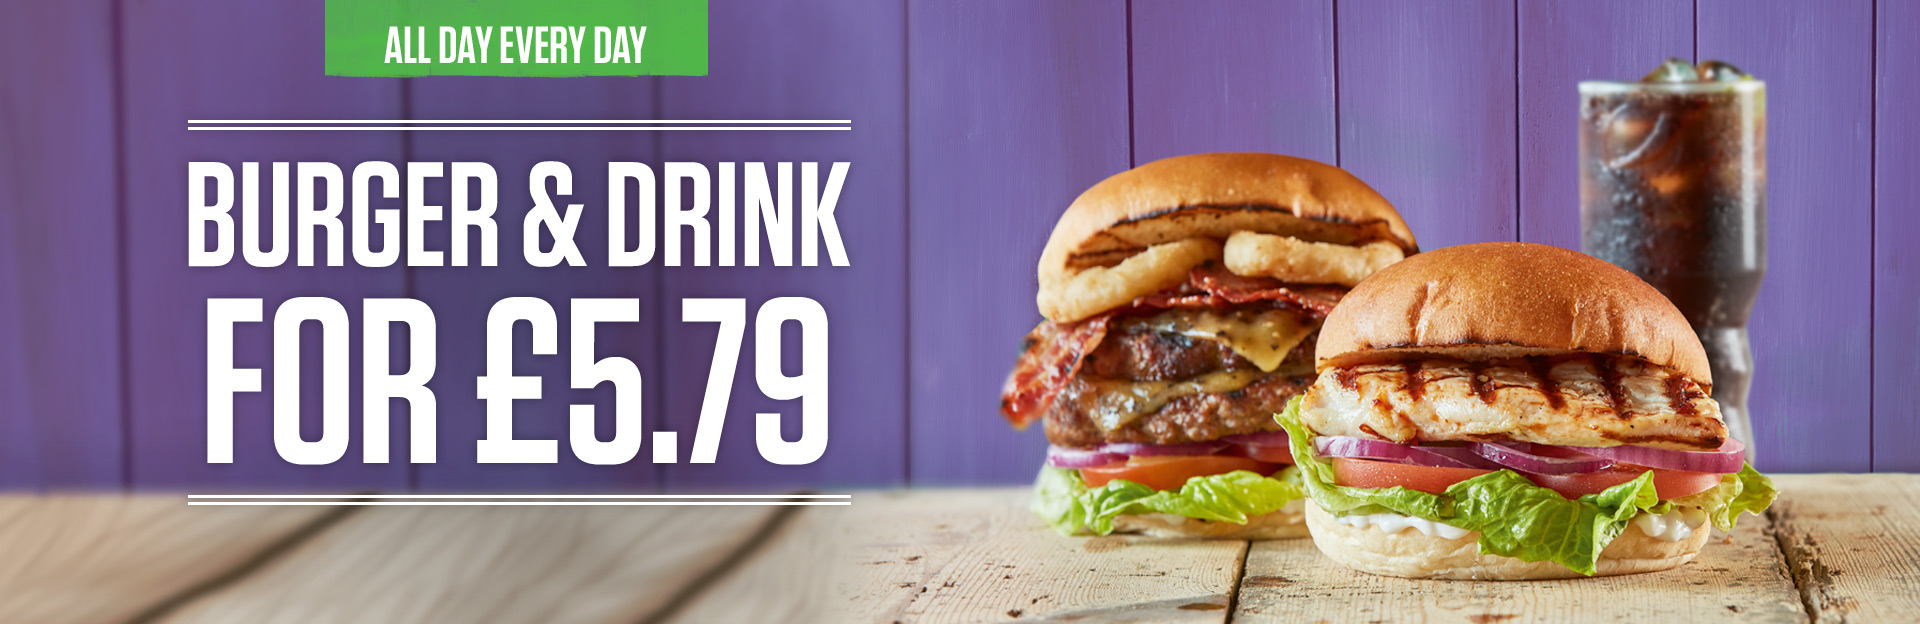 Burger and Drink Deal at The Running Horse